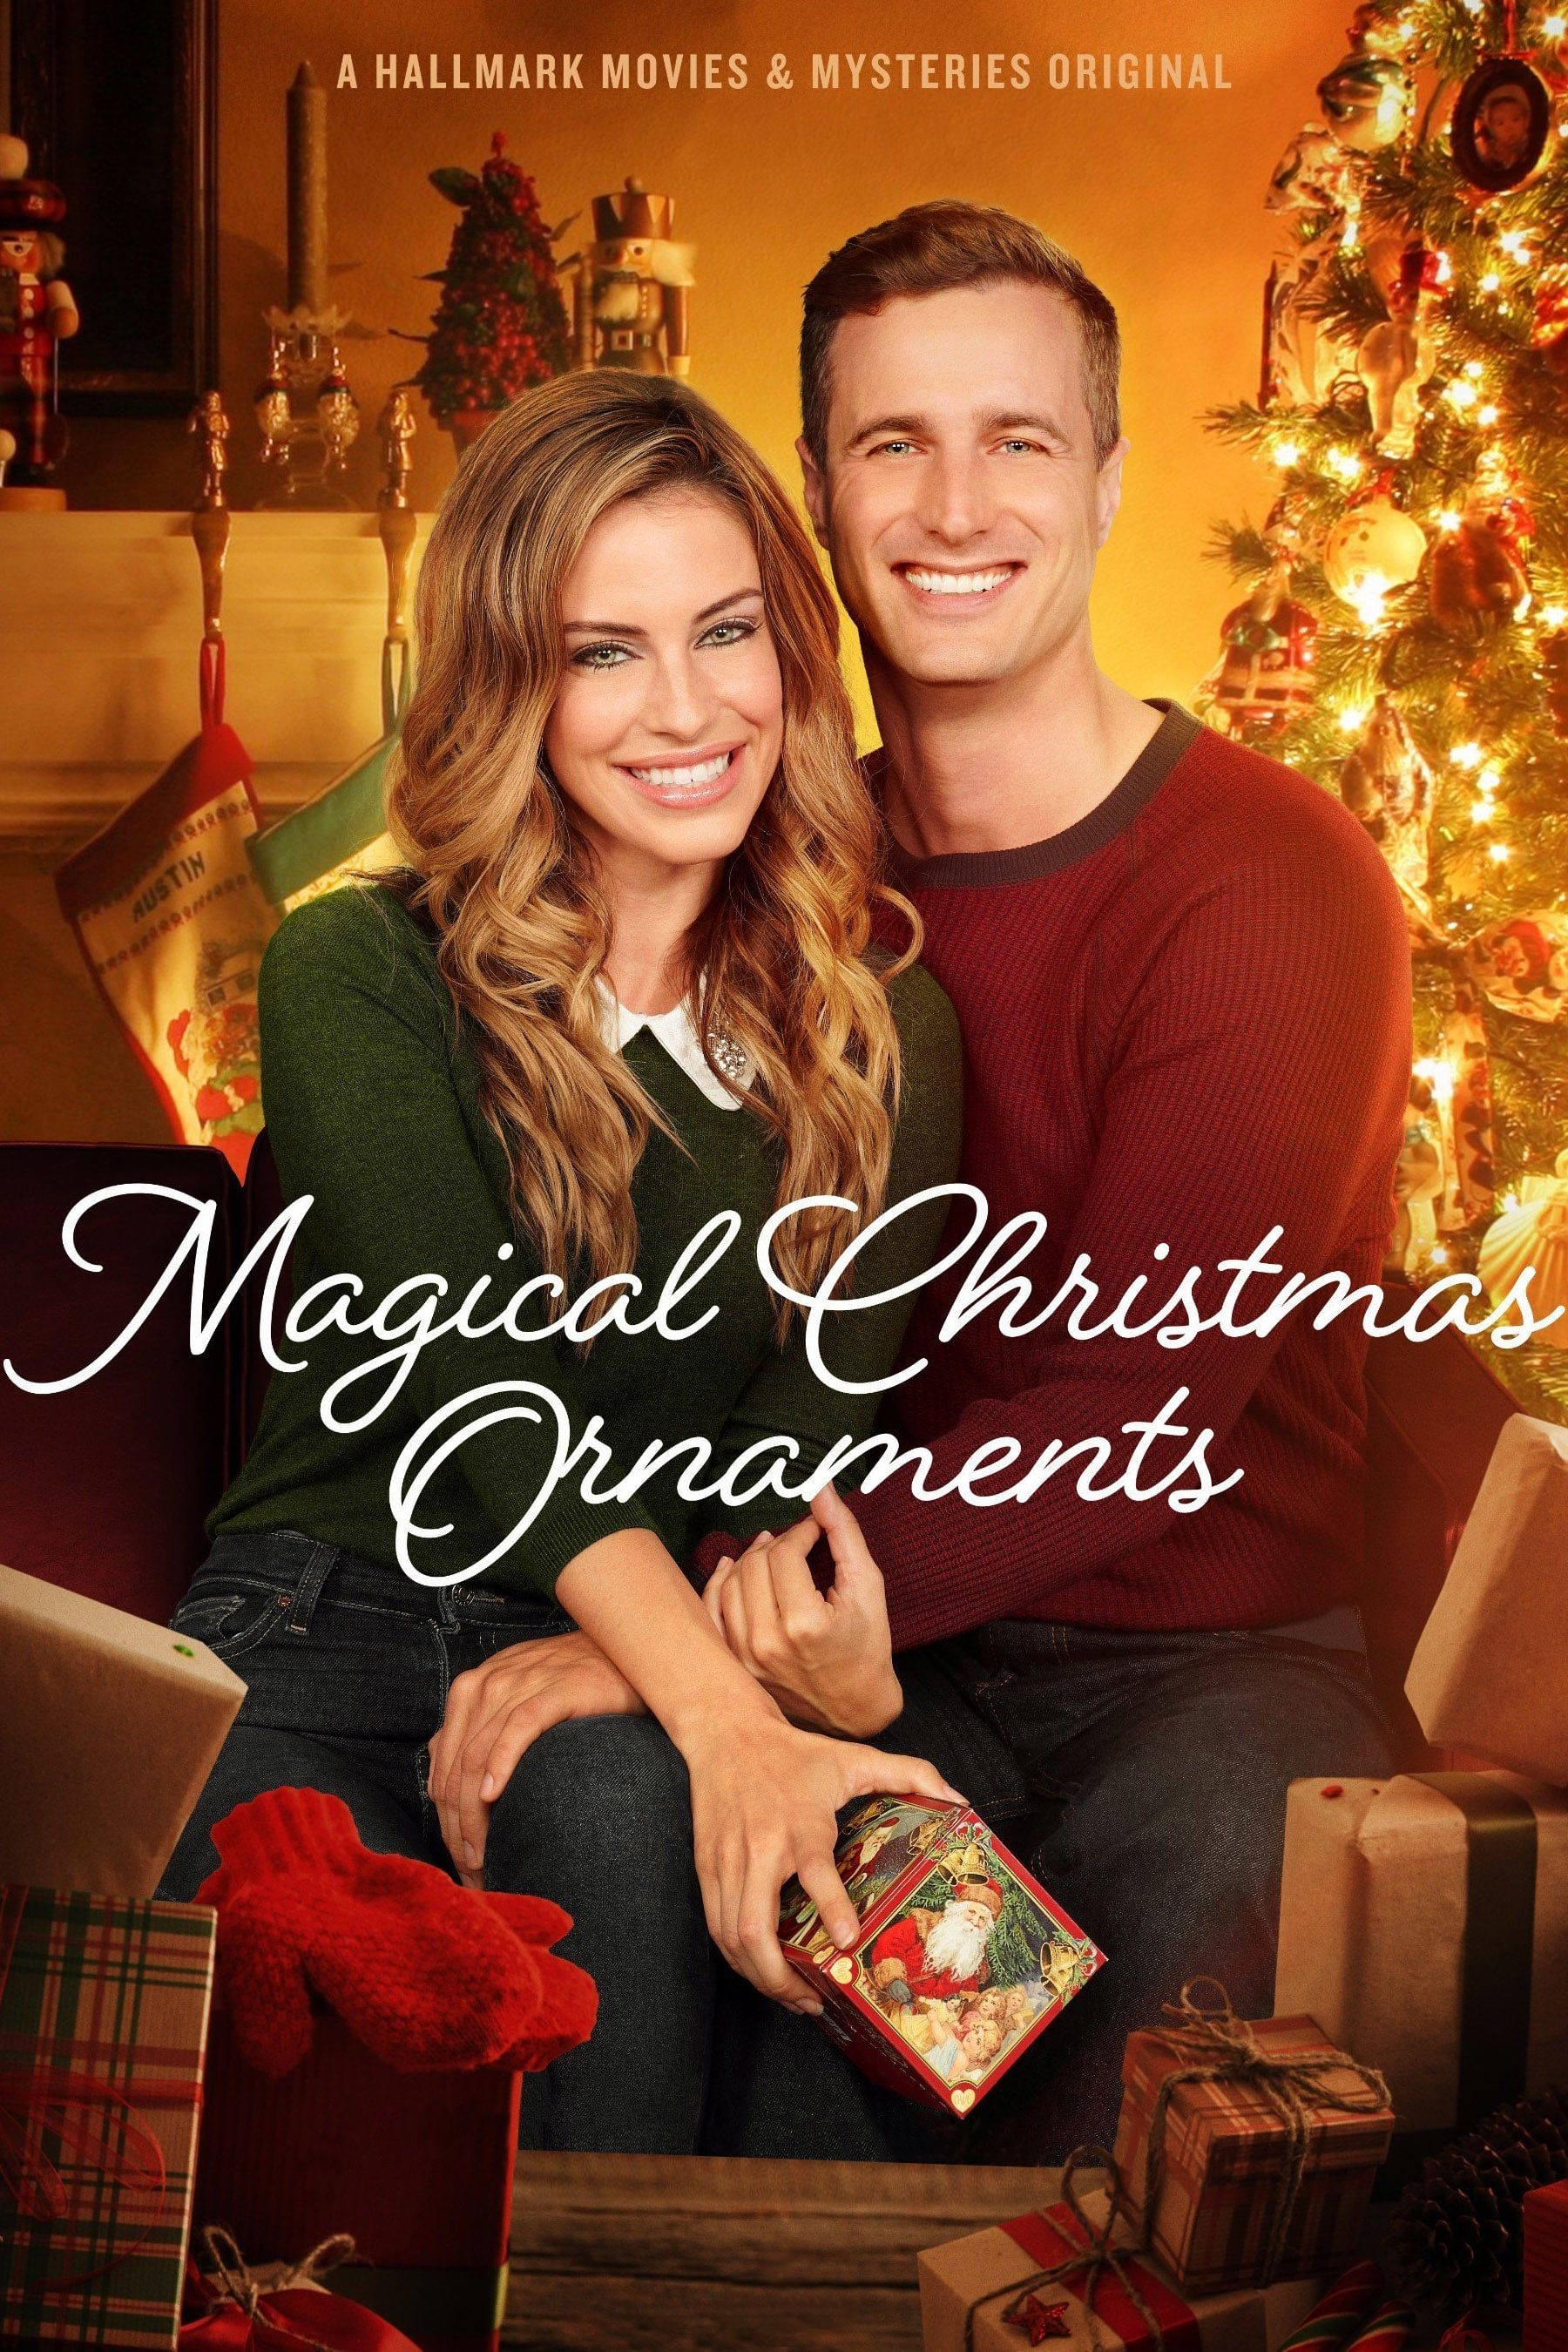 Pin By Sherry Perry On Christmas Movies Hallmark Christmas Movies Hallmark Movies Christmas Movies